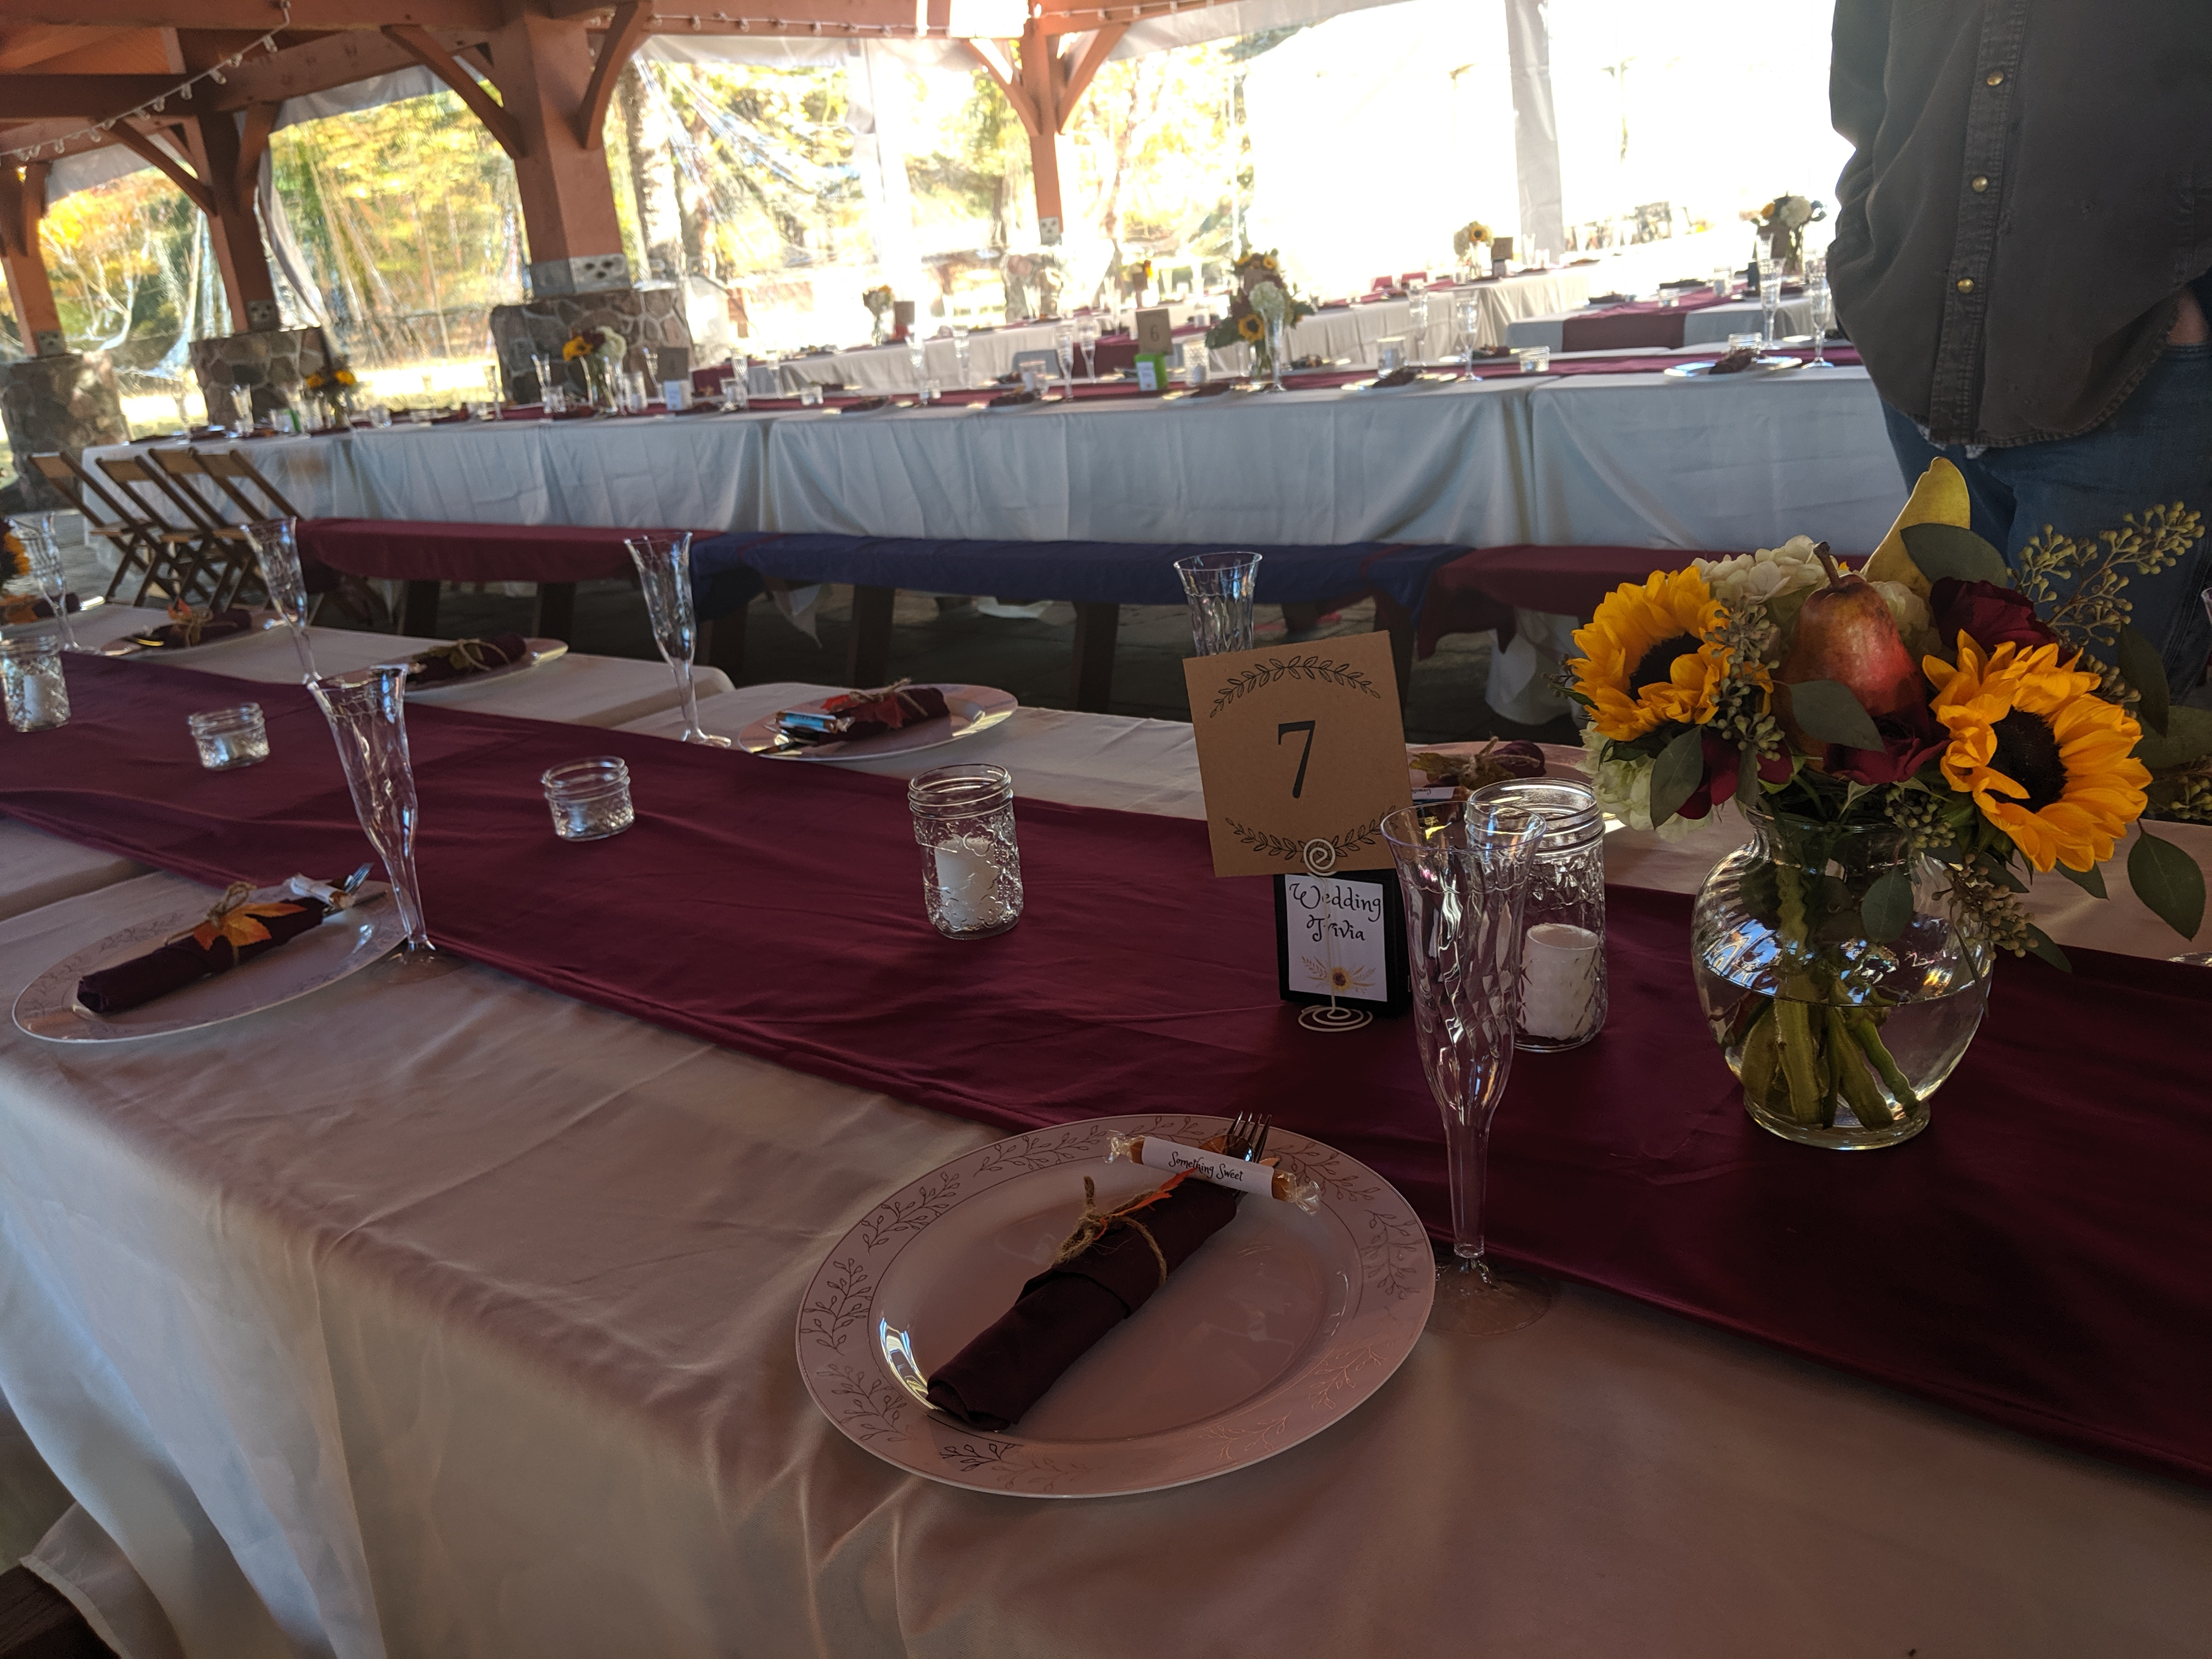 50 Foot Burgundy Table Runner